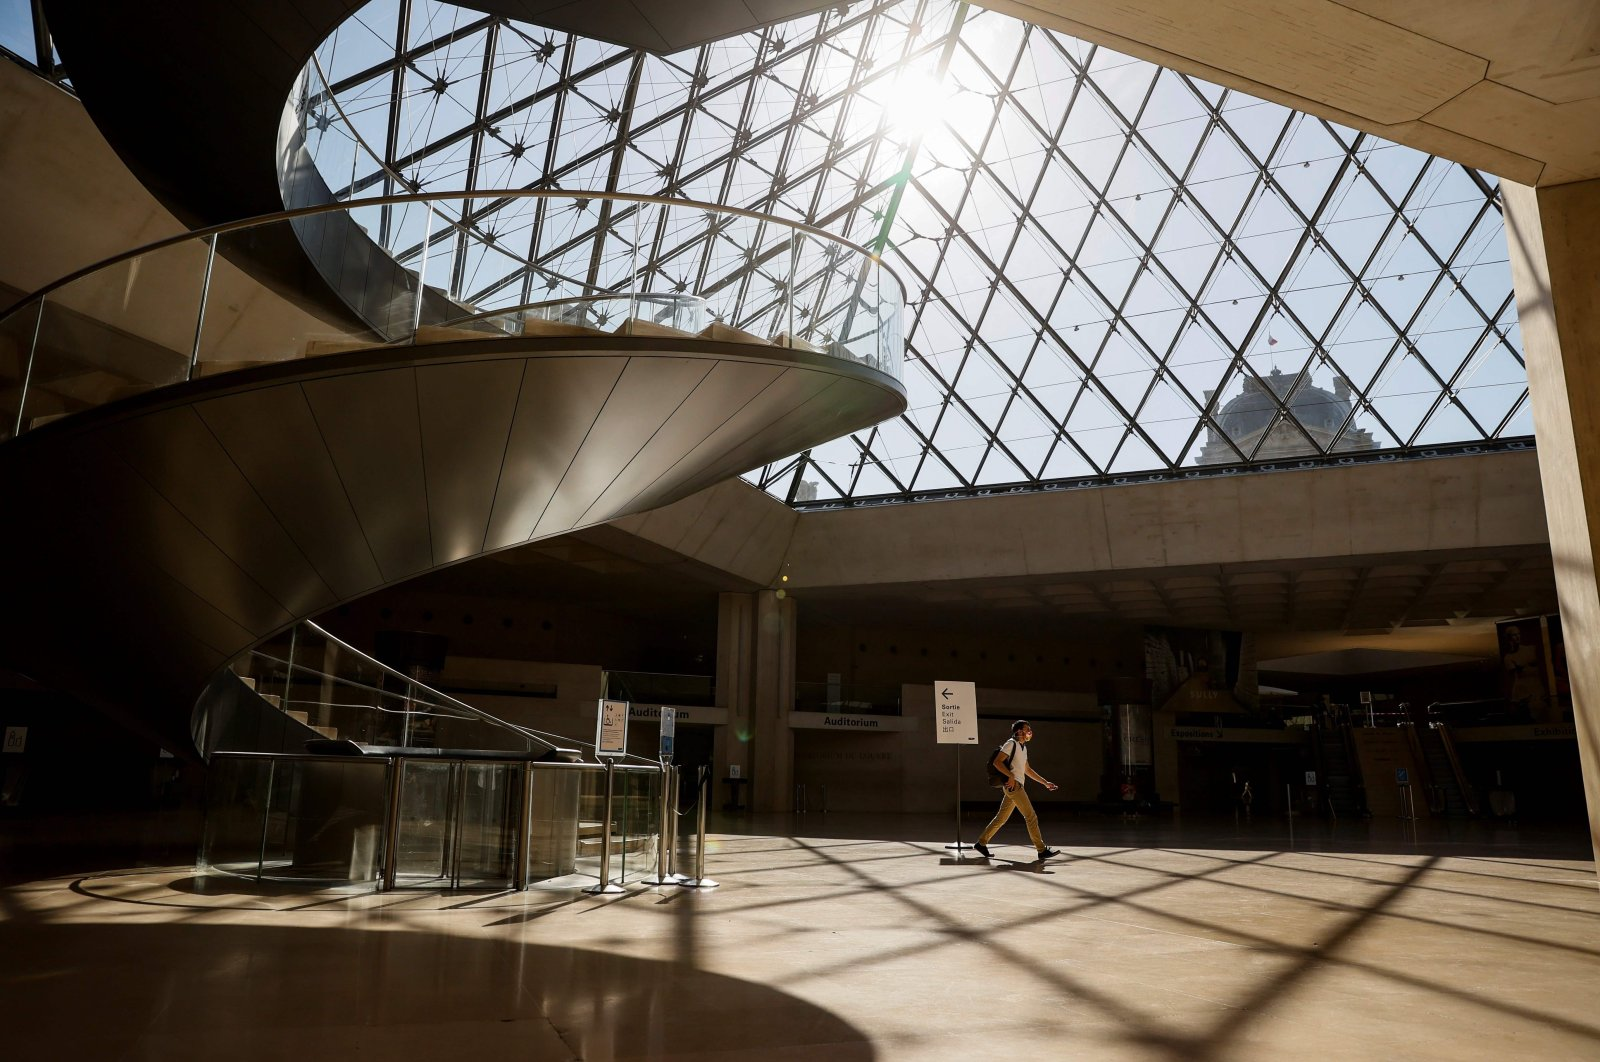 An employee passes under the Louvre pyramid designed by Chinese architect Ieoh Ming Pei near the Louvre Museum in Paris, France, June 23, 2020. (AFP Photo)